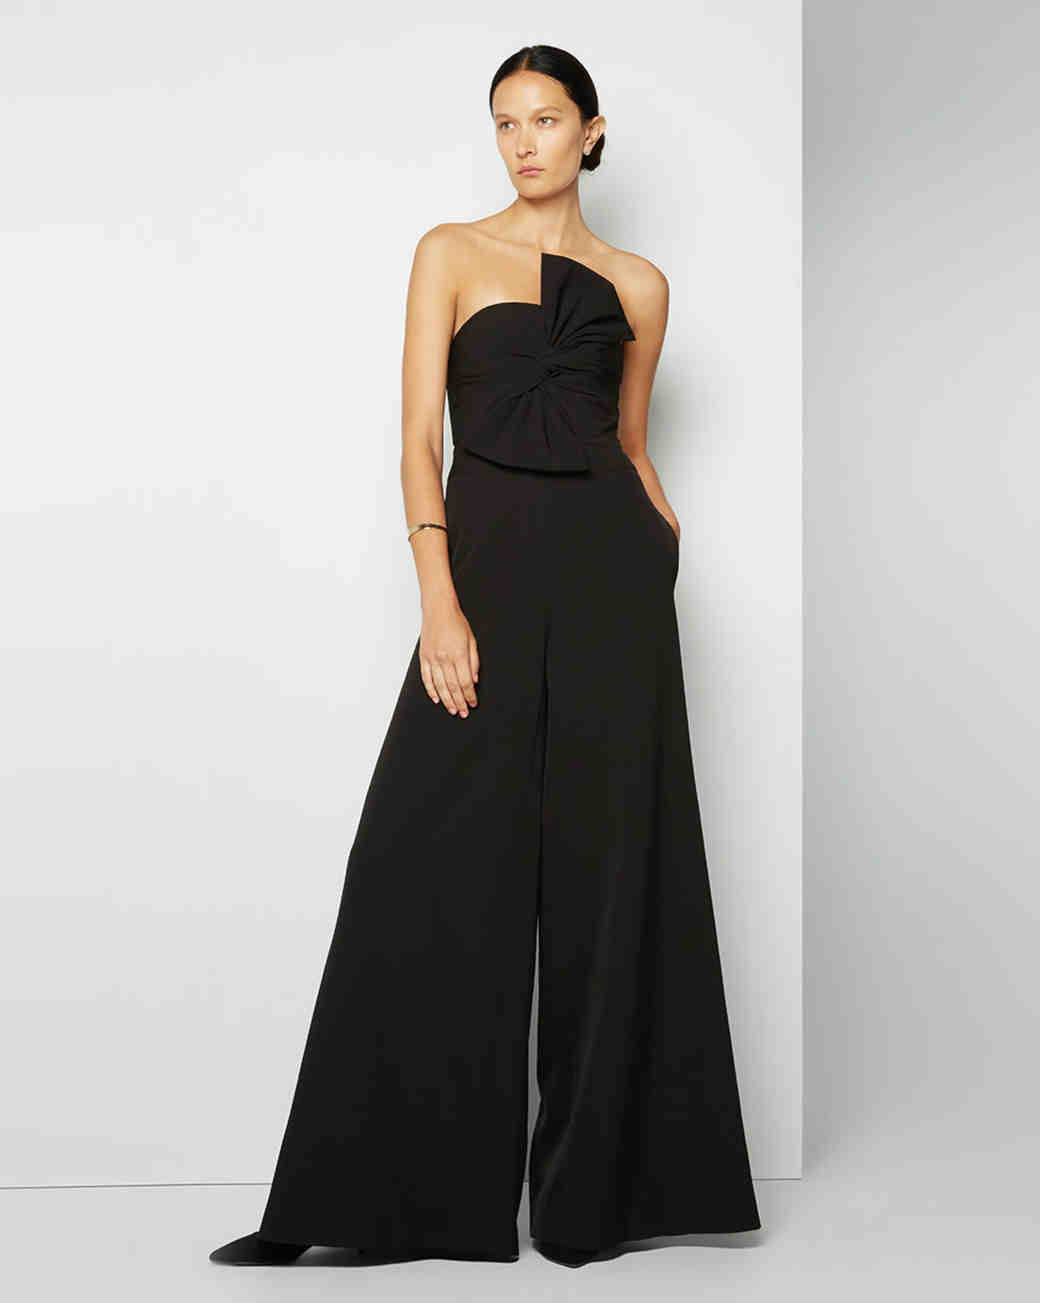 26 Chic Bridesmaid Jumpsuits Martha Stewart Weddings